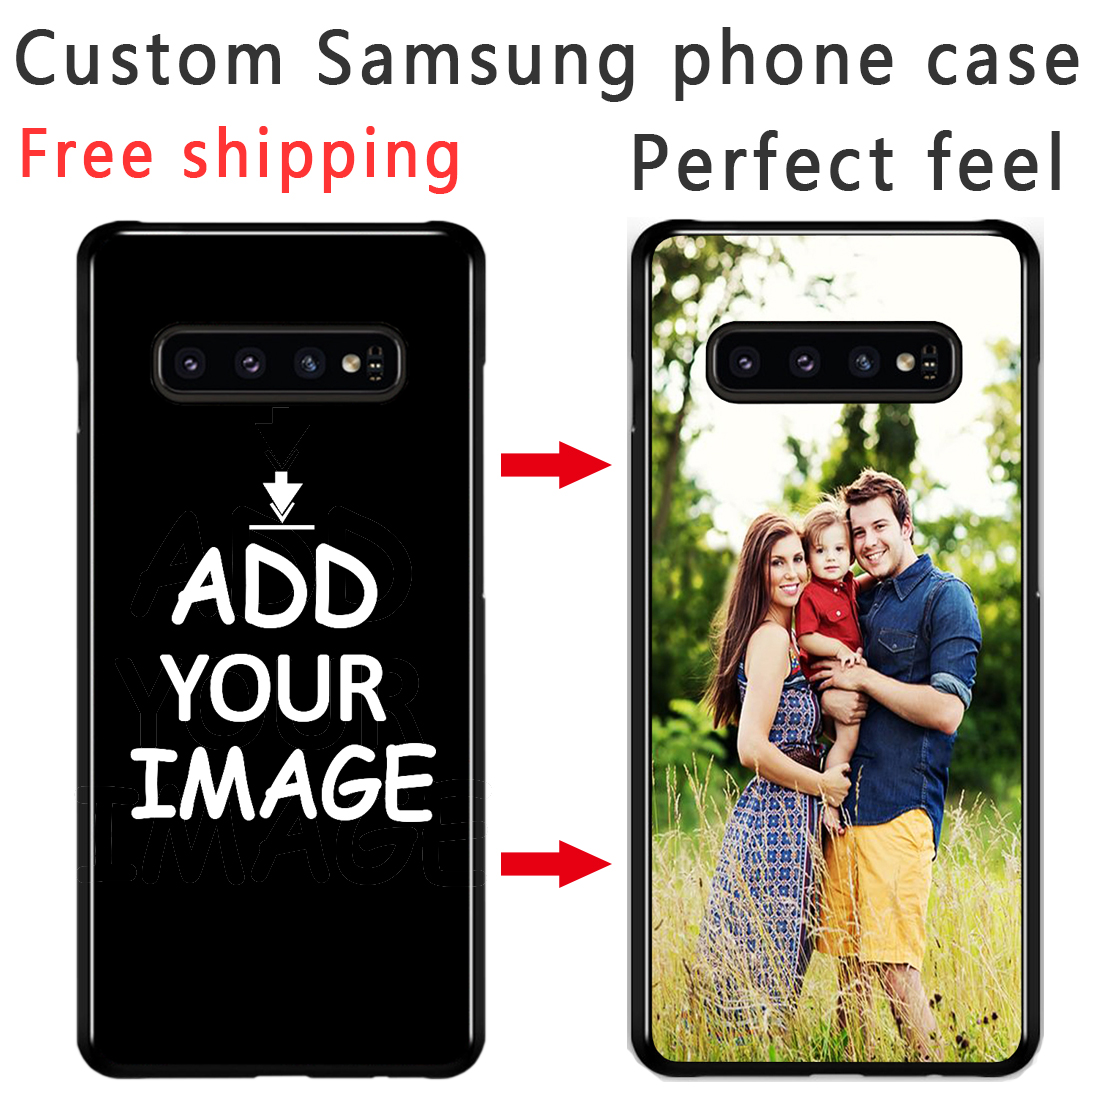 Custom Personalized Phone case Make your Photo images pattern Black Sotf TPU Cover Case for Samsung s8 s9 s10E plus S6 S7 Edge image